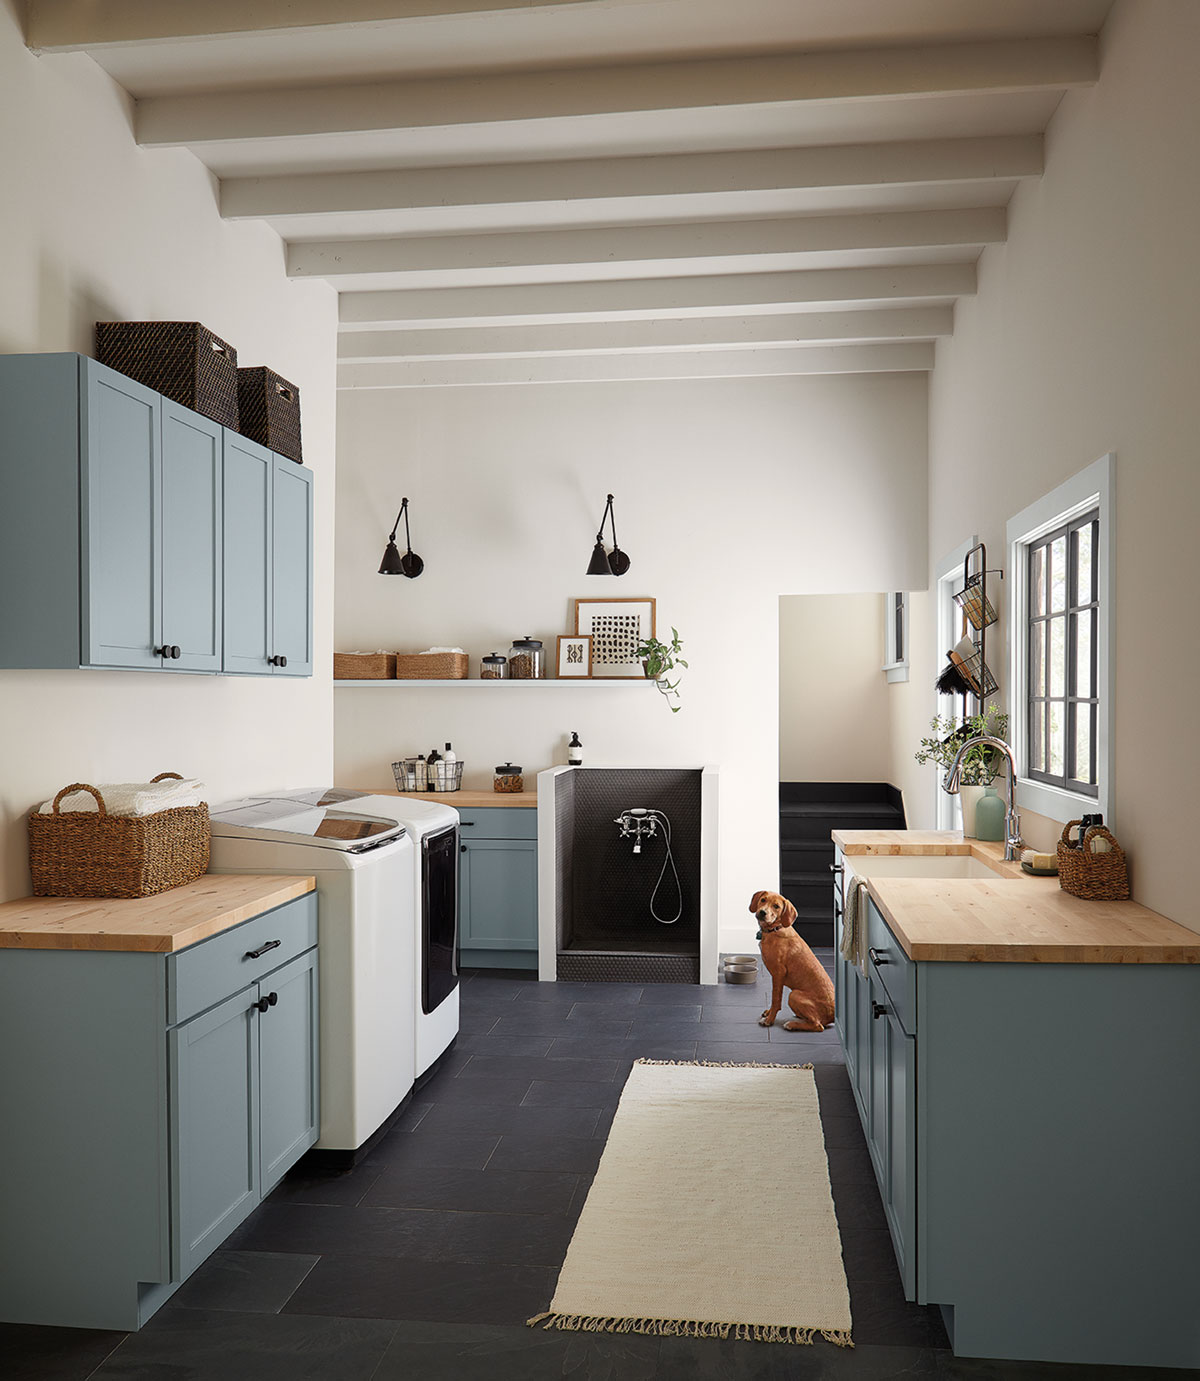 laundry room, sink and tops on the right side, laundromat and dryer on the left side, dog sitting in the middel